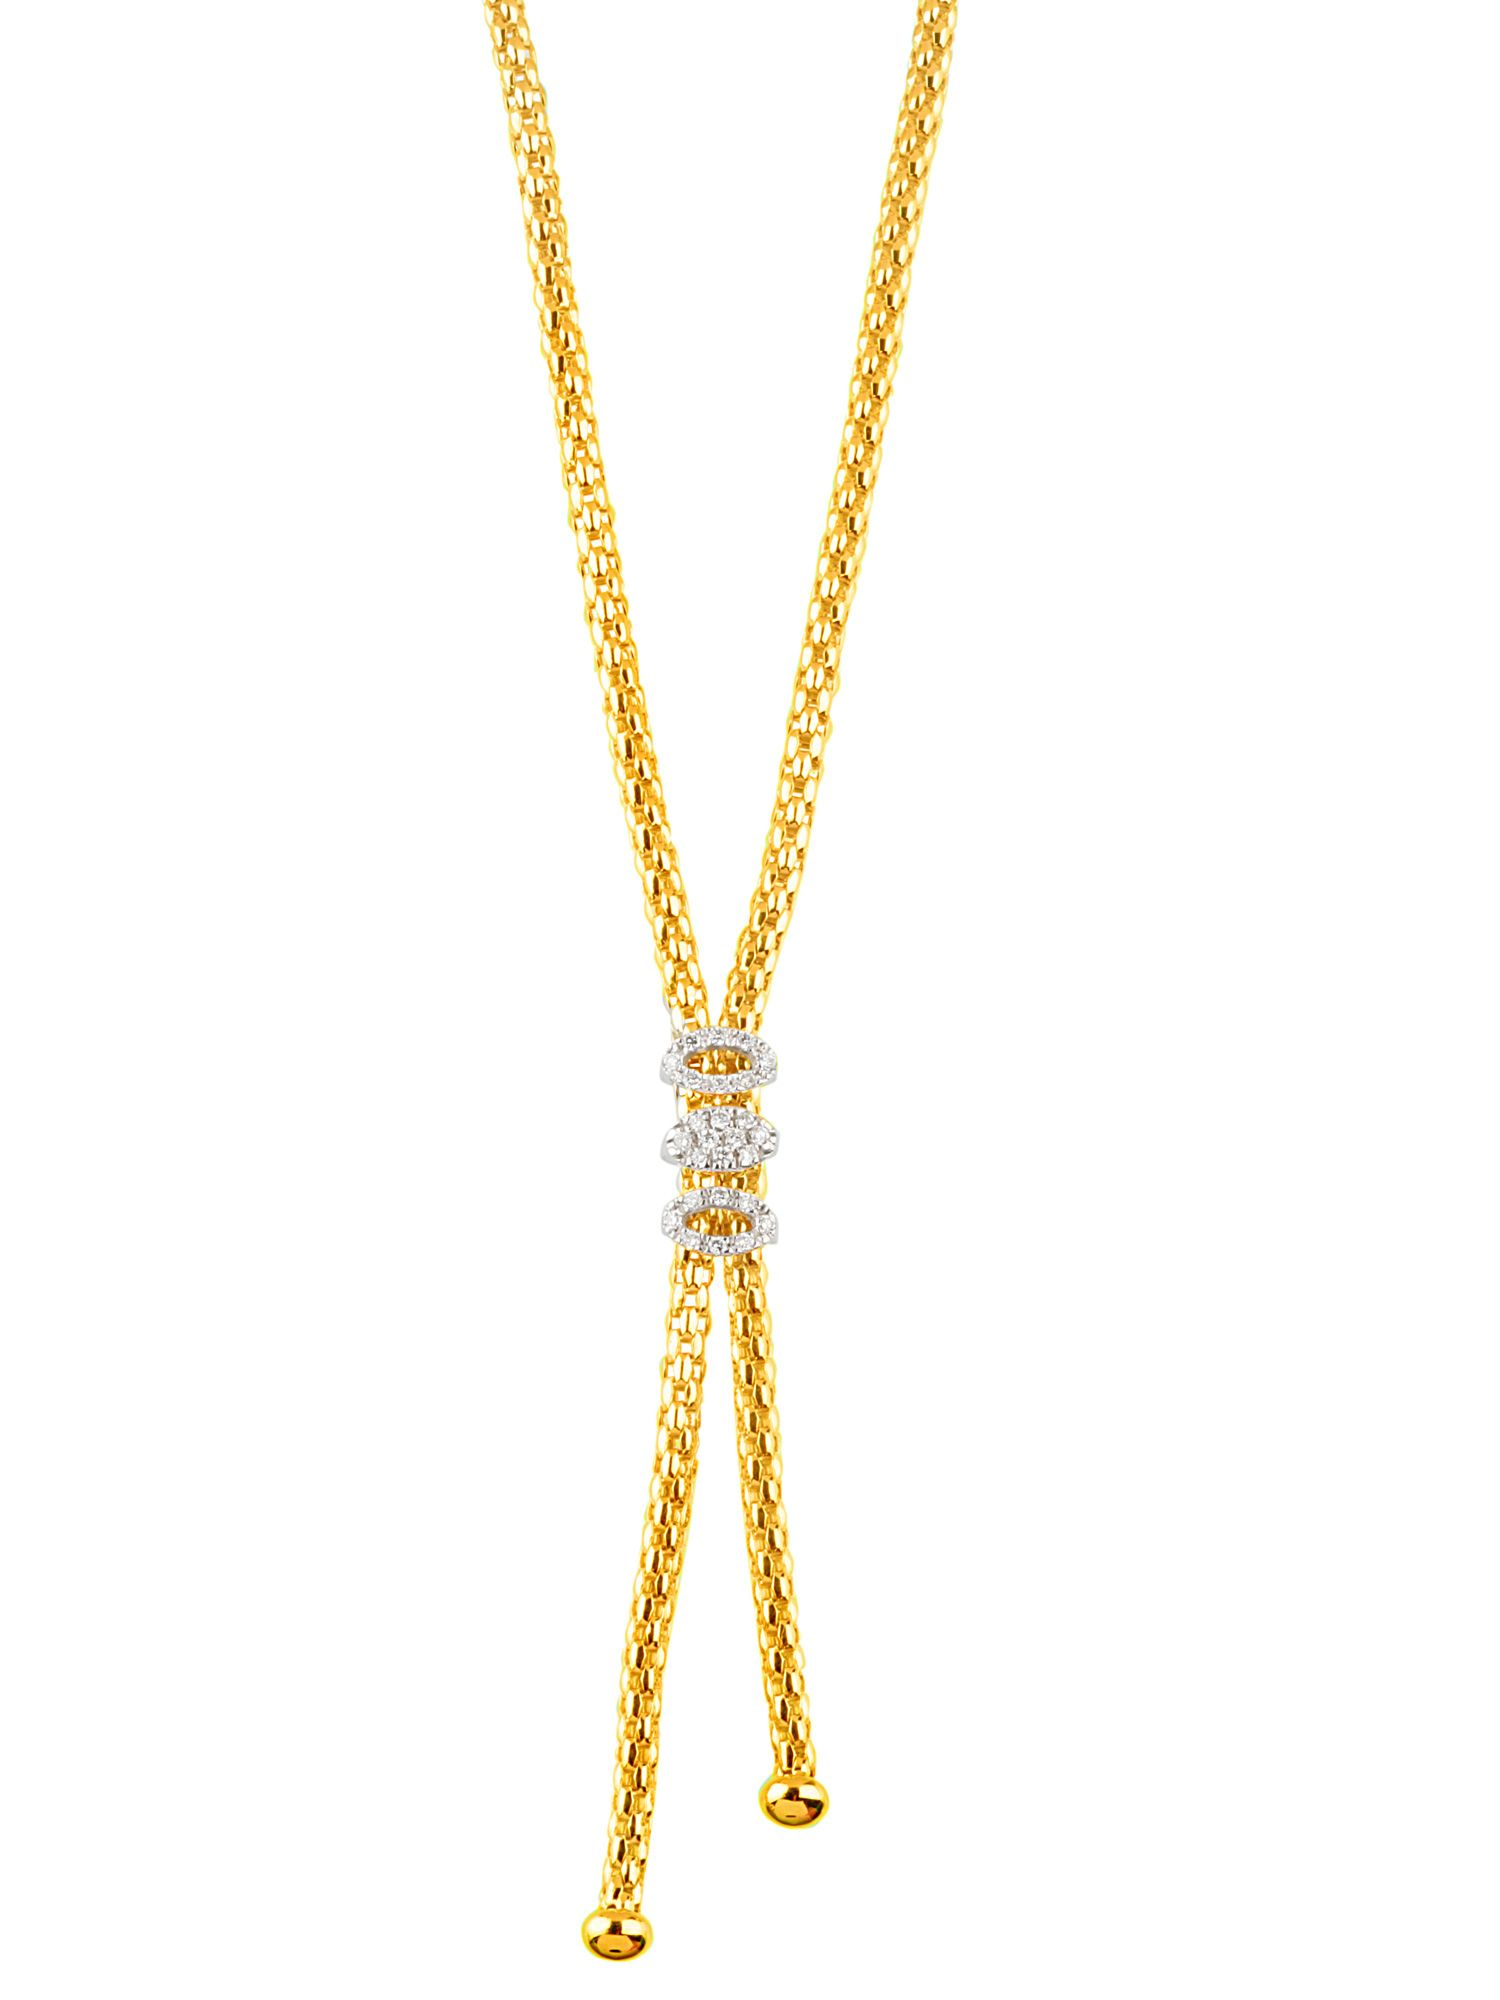 Fope 18ct 2 colour gold 0.25ct diamond necklace